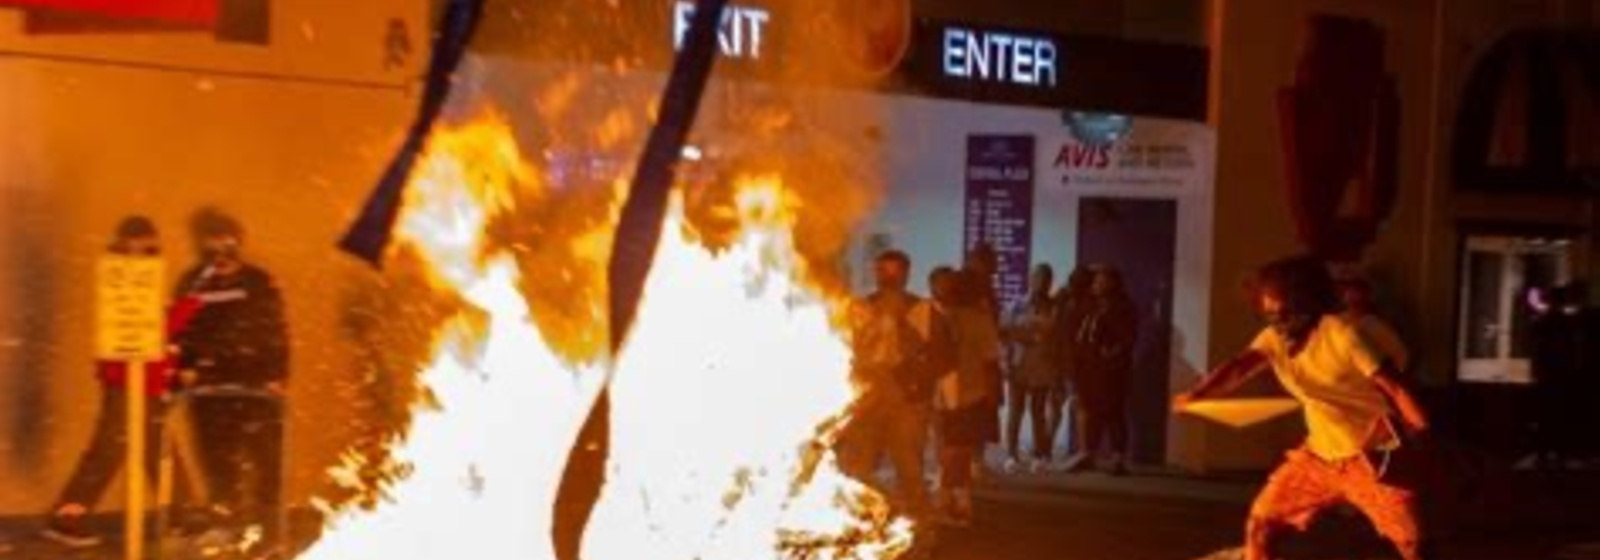 Portland: Protests, Violence and Fires, No Media Coverage